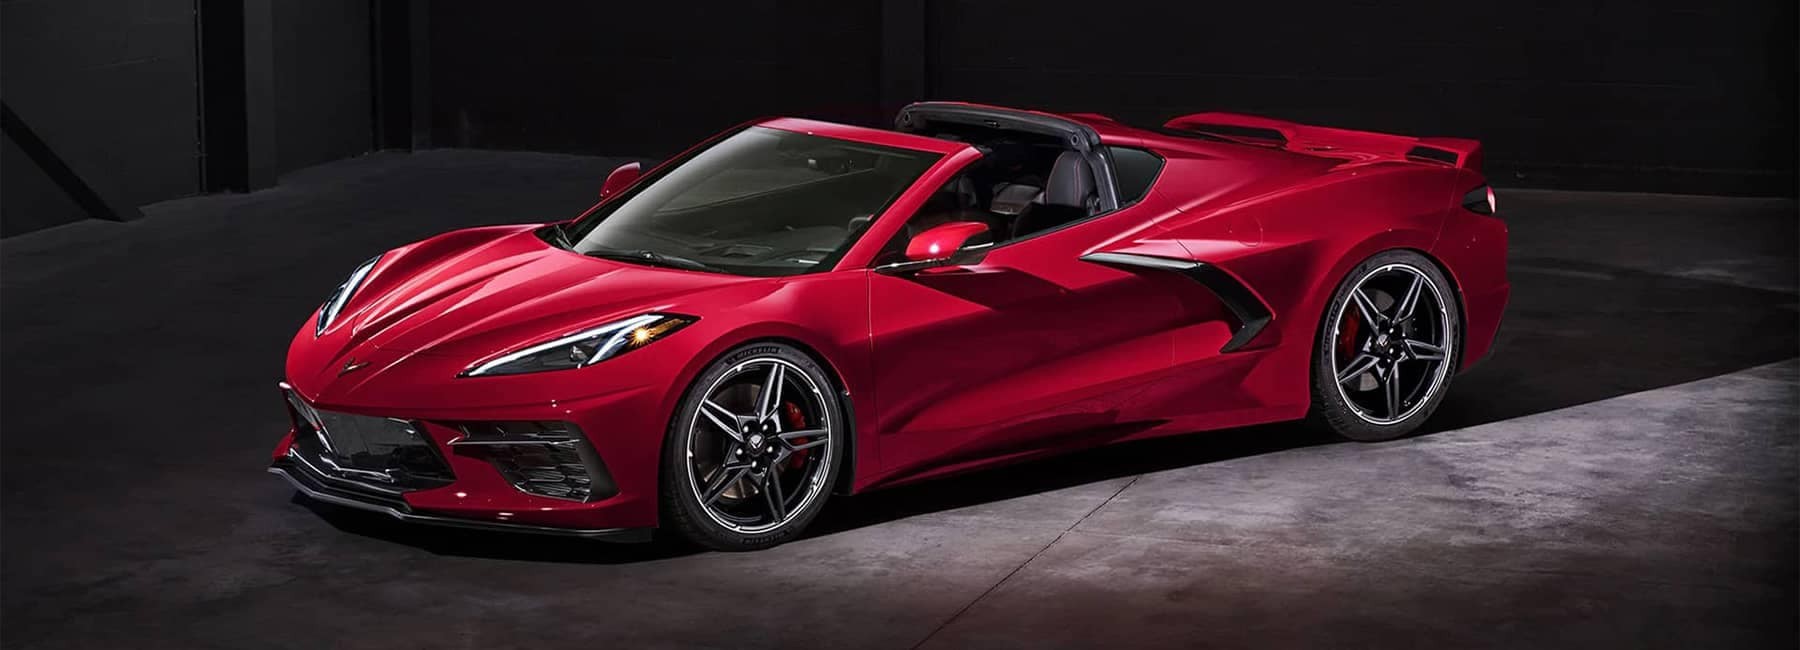 2020 Chevrolet Corvette Mid-Engine Sports Car convertible front side exterior